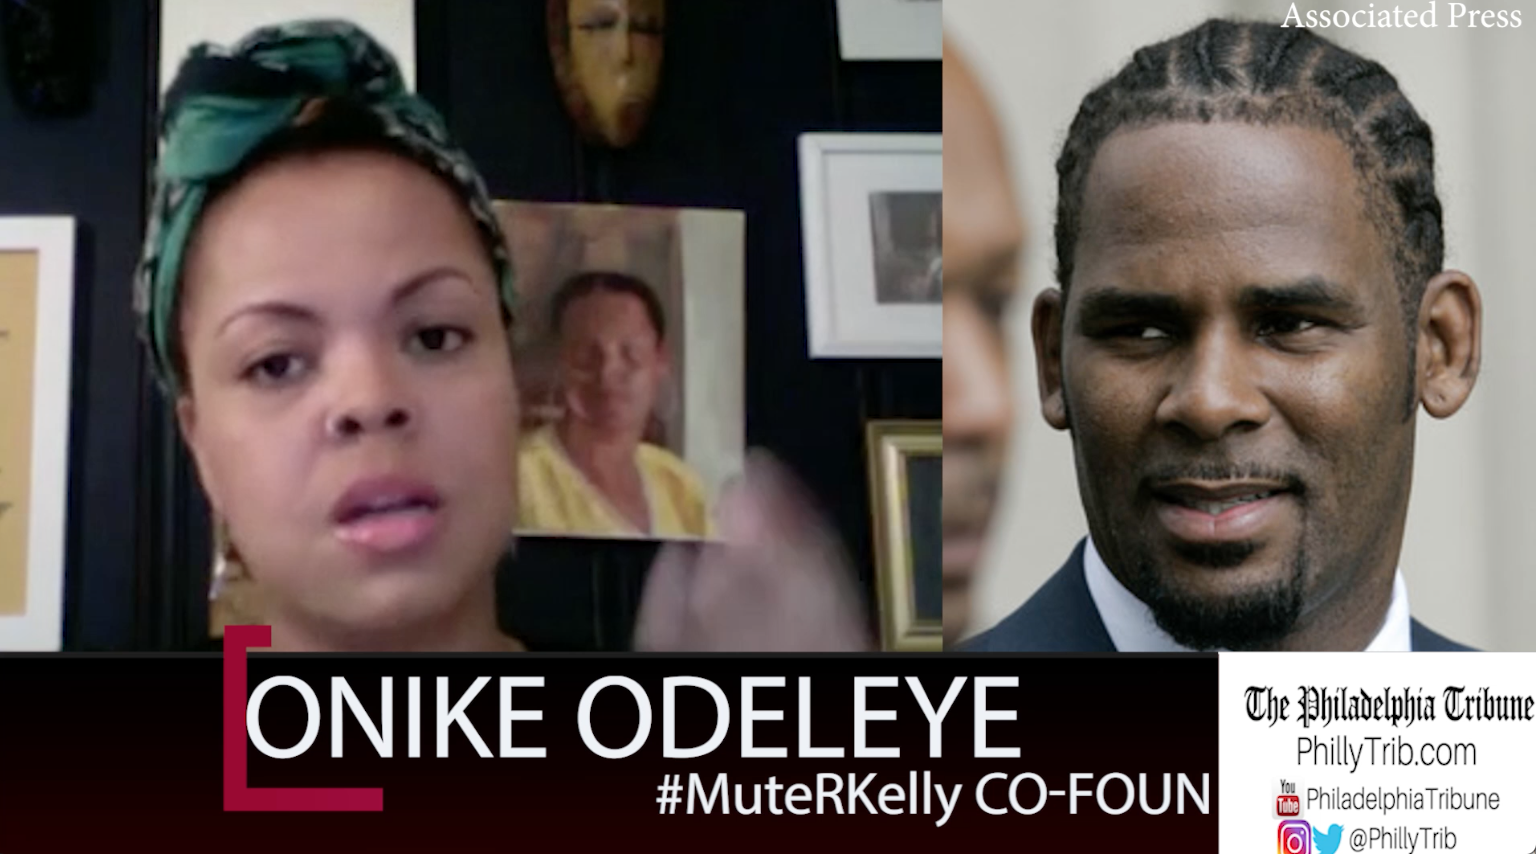 01/31/18: #MuteRKelly calls for silencing R. Kelly music